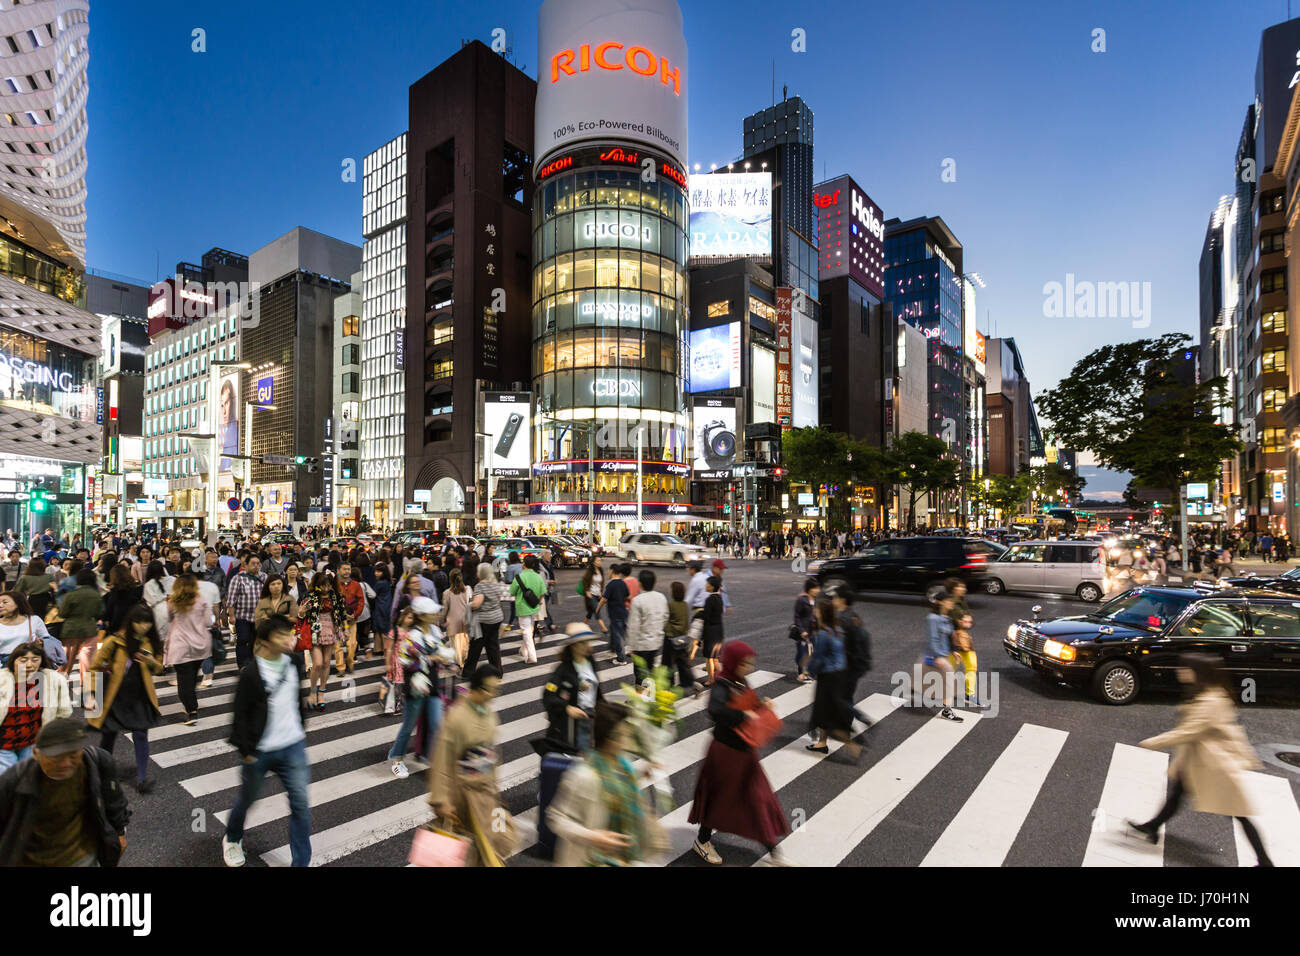 TOKYO - MAY 4, 2017: Pedestrian cross the street in famous luxury shopping district of Ginza in the heart of Tokyo, - Stock Image